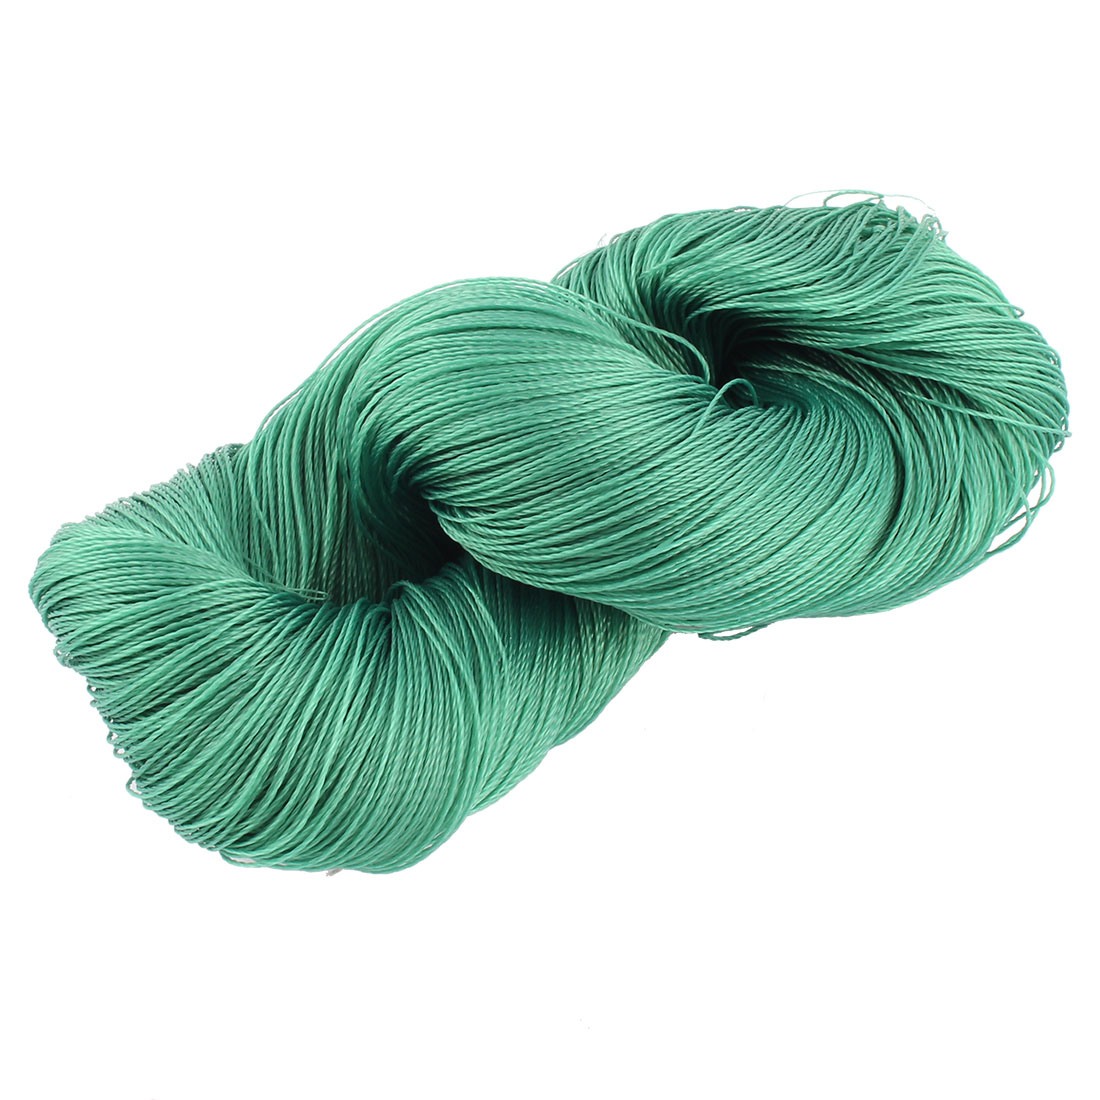 Fishing Fishman Handcraft Braided Nylon Seine Twine Mason Line Green 200M Length